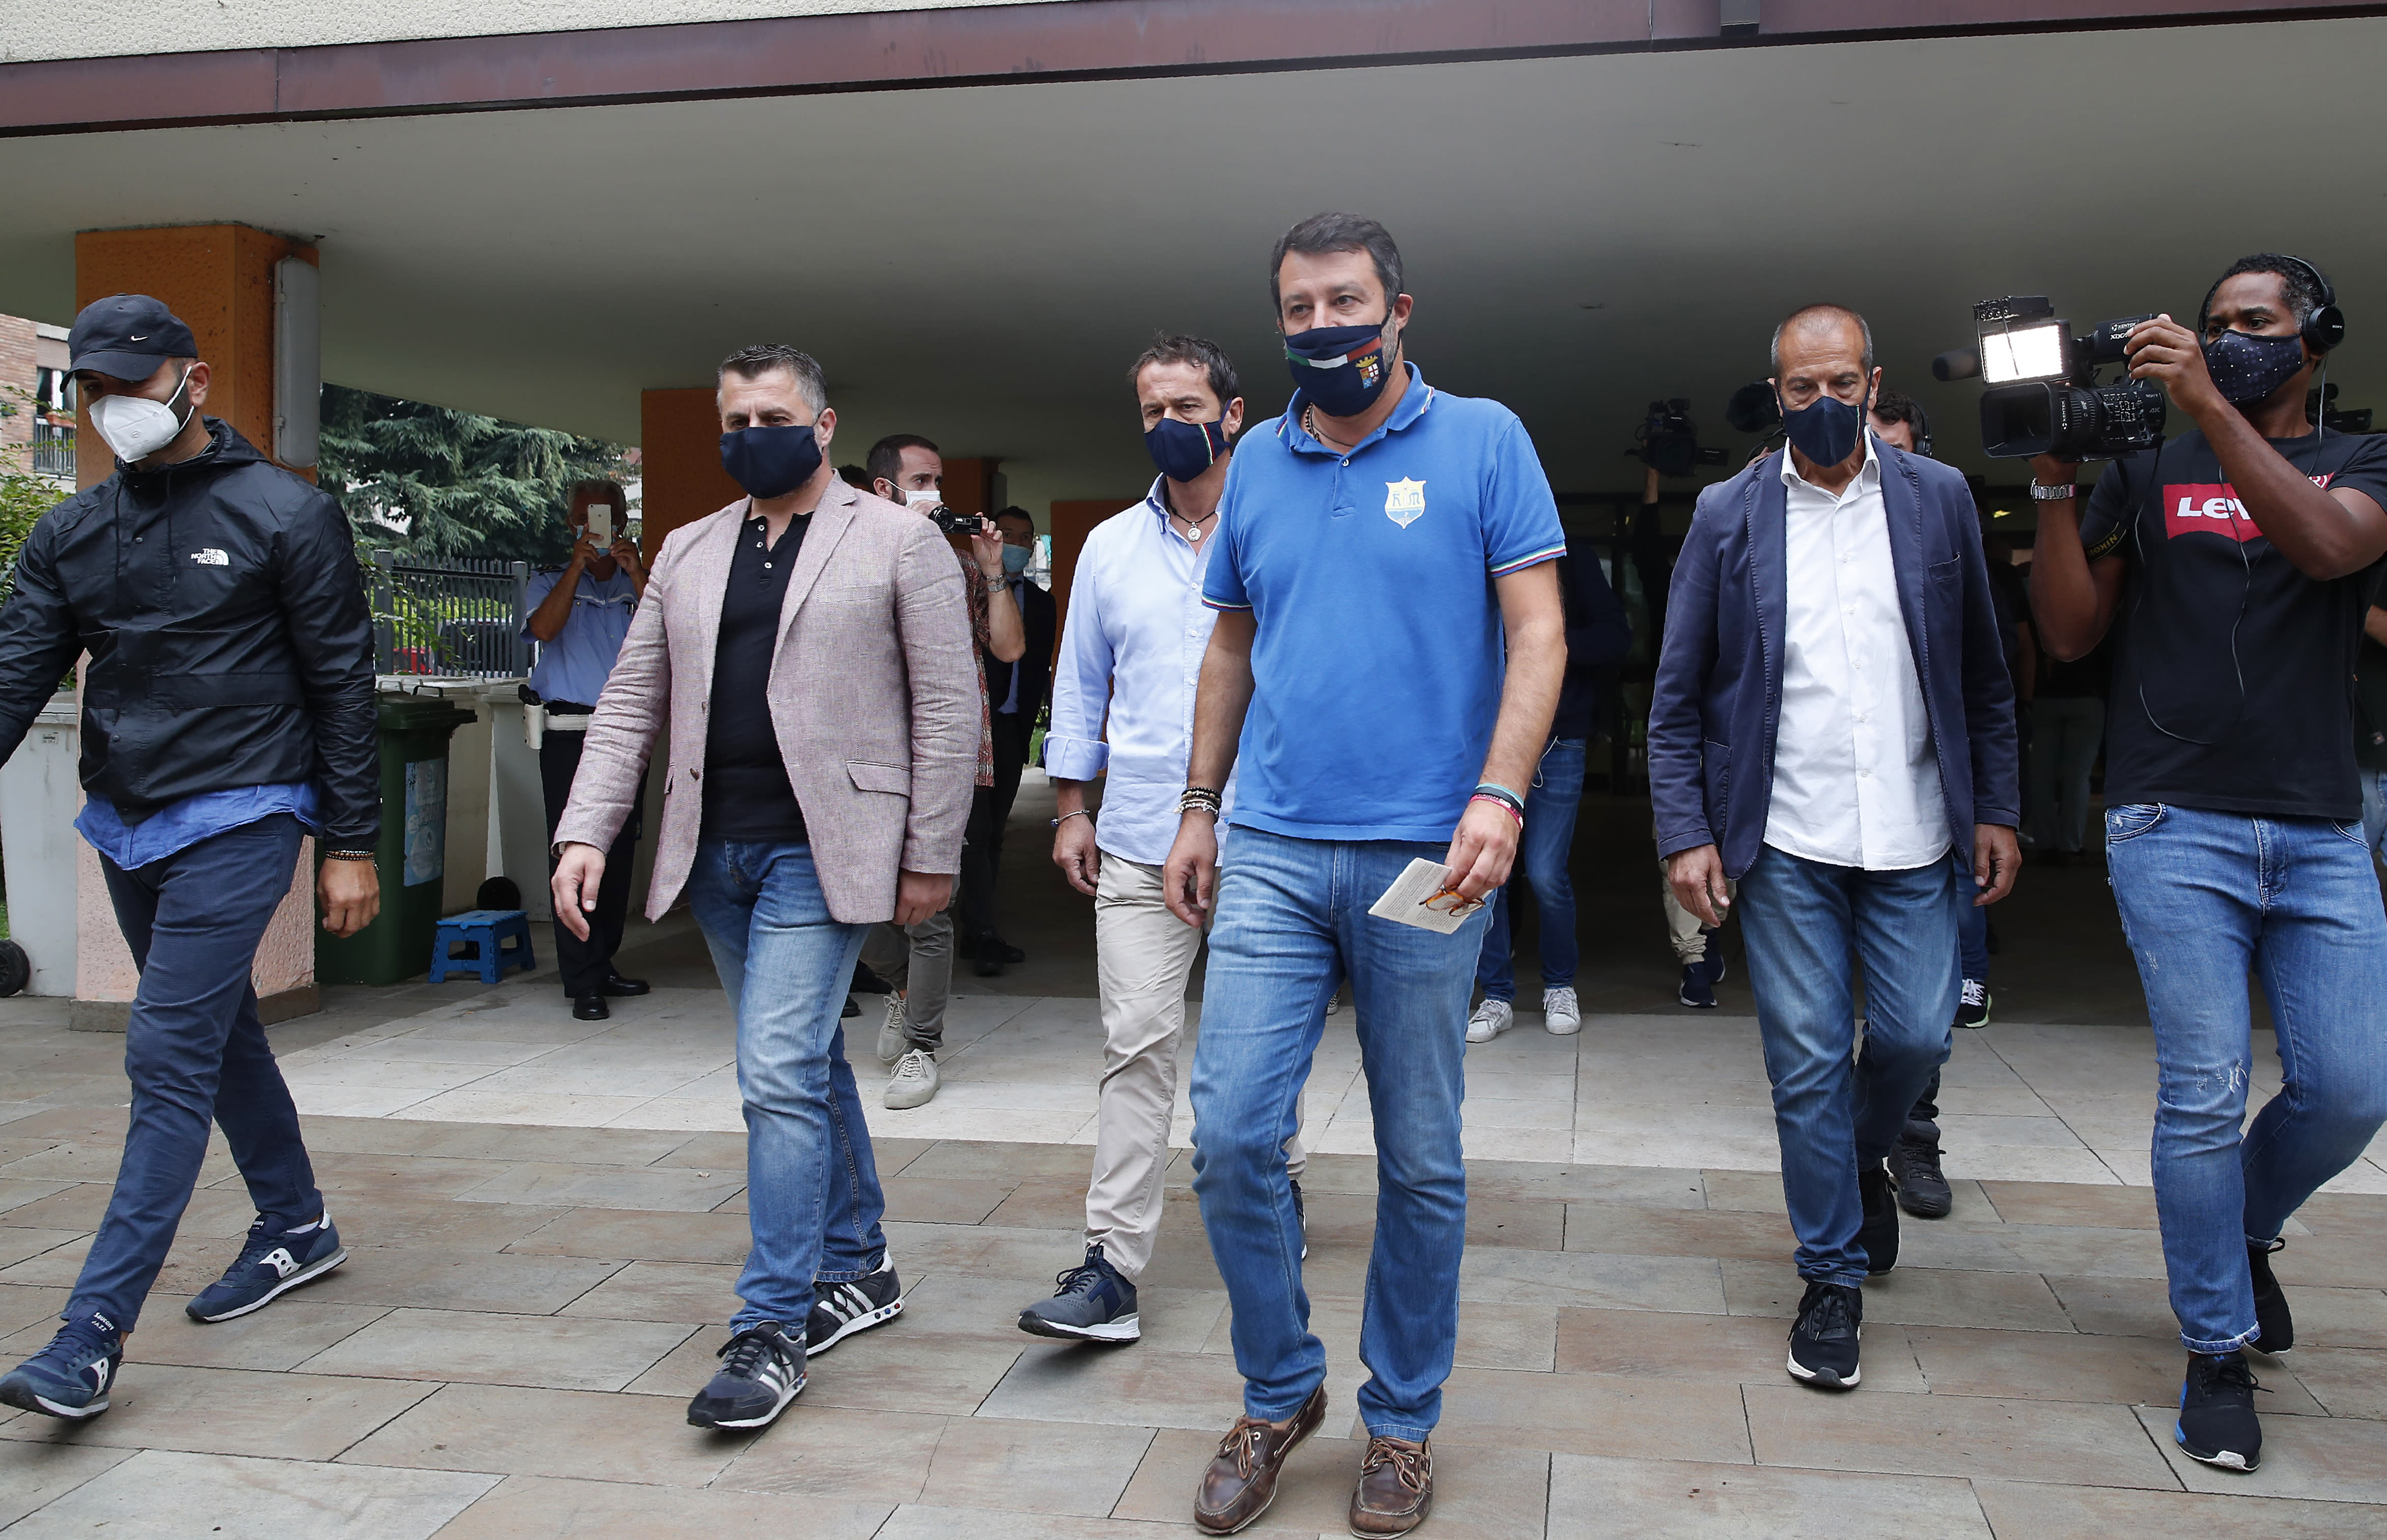 Right-wing opposition leader Matteo Salvini,center, leaves a polling station, in Milan, Italy, Monday, Sept. 21, 2020. On Sunday and Monday Italians are called to vote nationwide in a referendum to confirm a historical change to the country's constitution to drastically reduce the number of Members of Parliament from 945 to 600. Eighteen million of Italian citizens will also vote on Sunday and Monday to renew local governors in seven regions, along with mayors in approximately 1,000 cities. (AP Photo/Antonio Calanni)